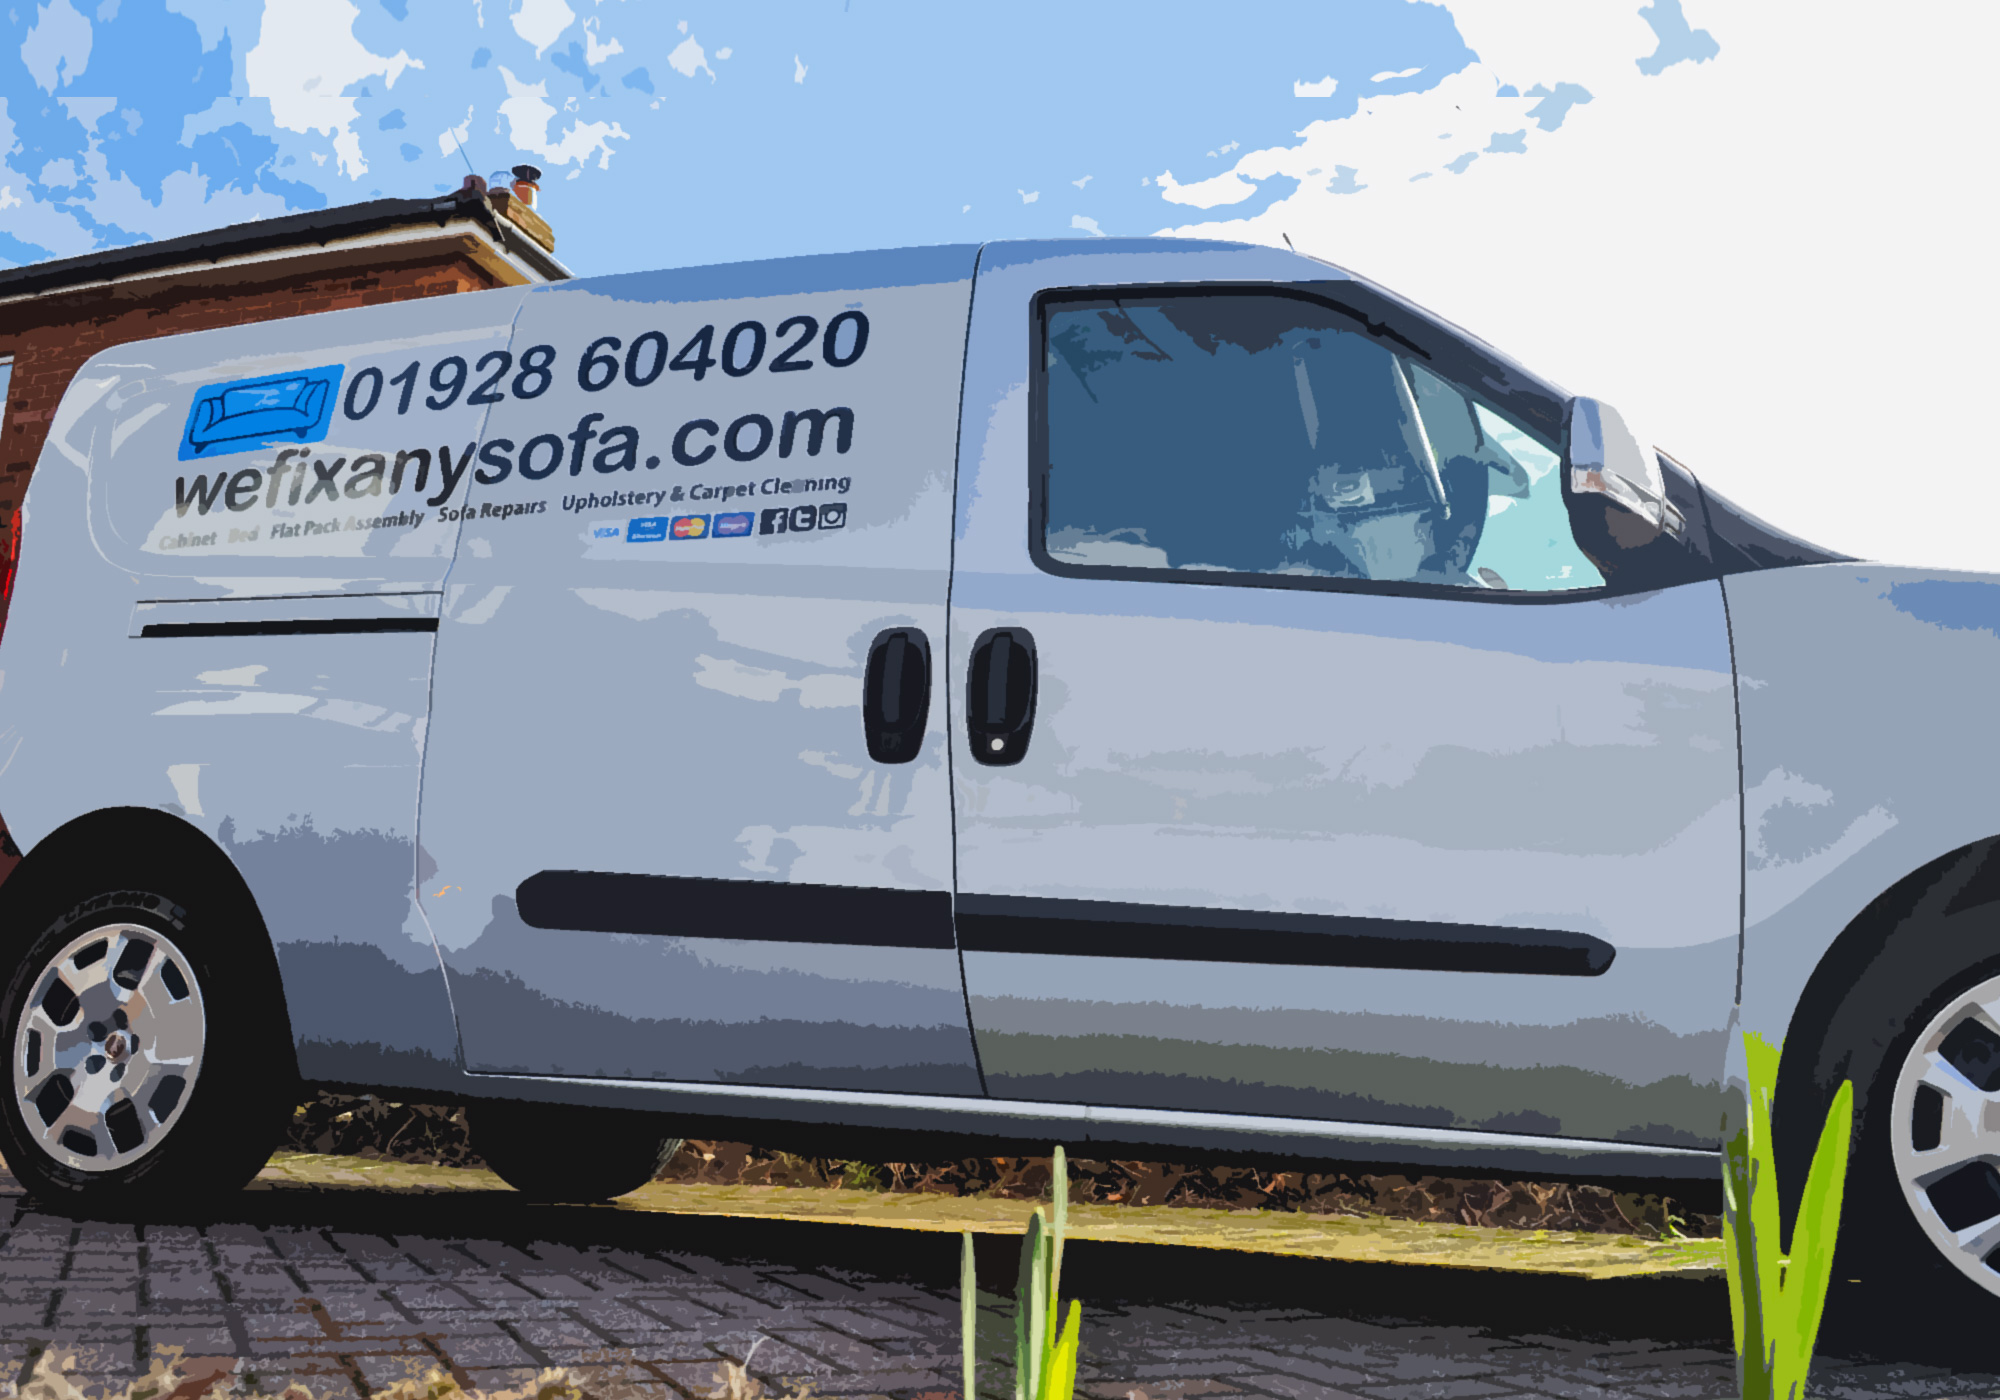 Wefixanysofa furniture repair van